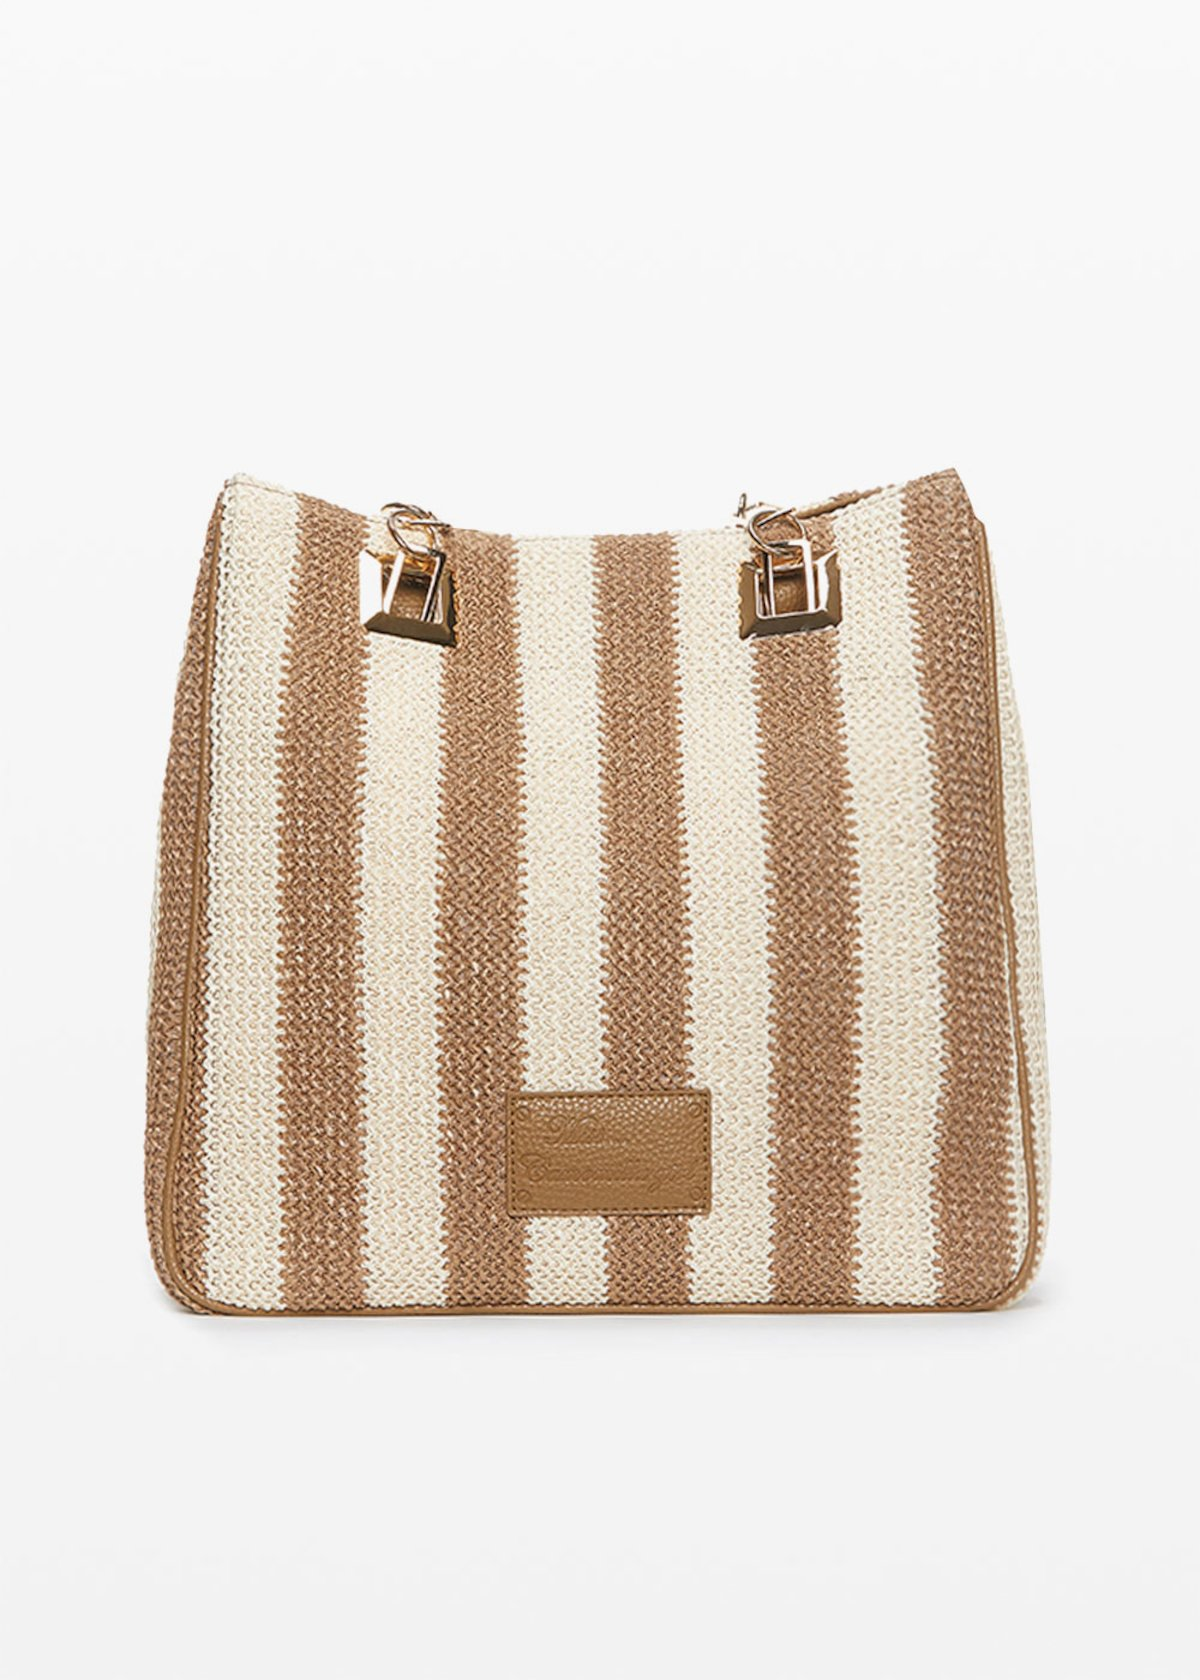 Mmissstri bag with stripes pattern - Desert / White Stripes - Woman